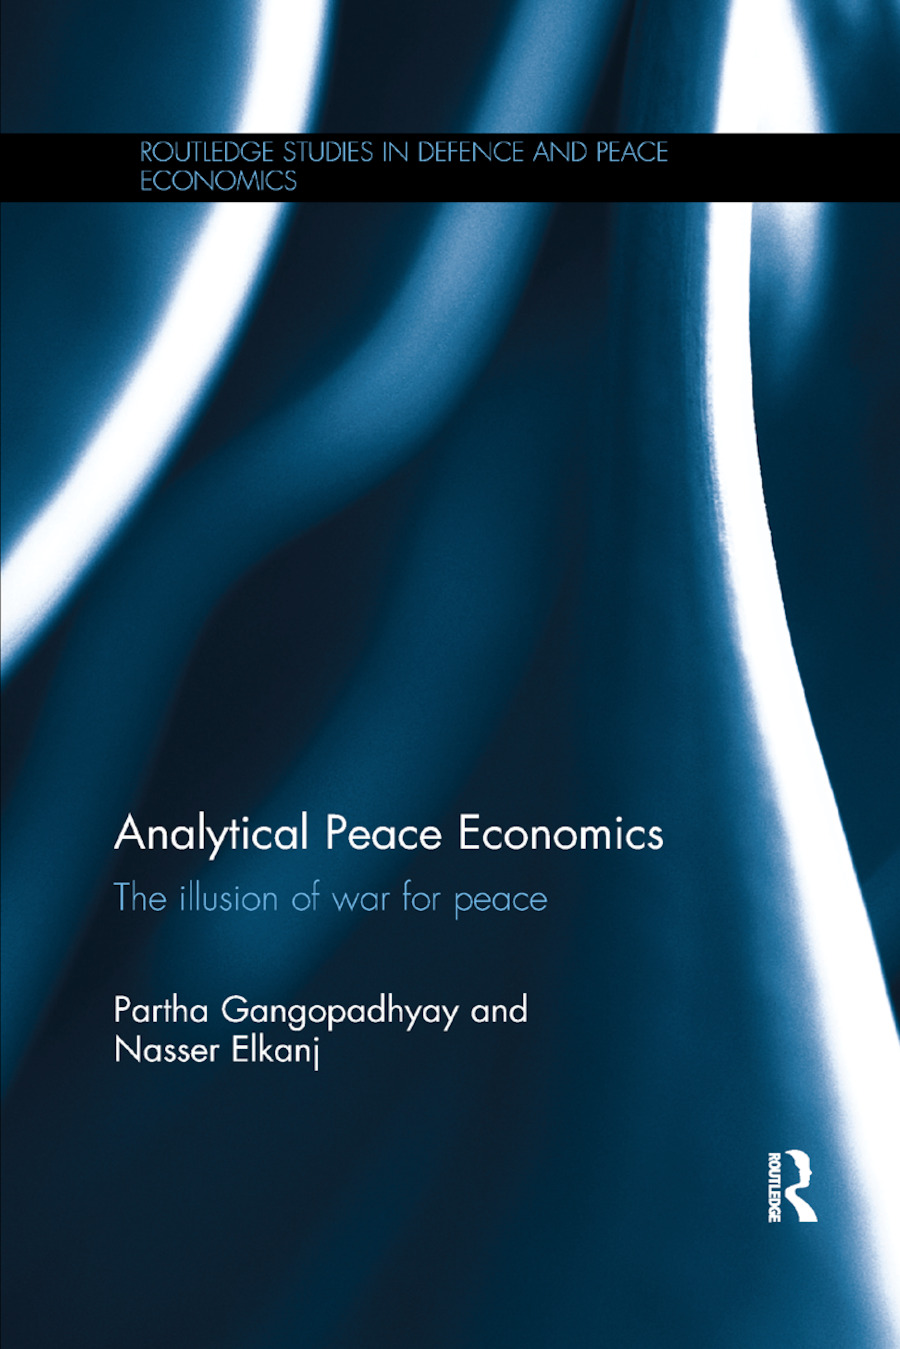 Analytical Peace Economics: The illusion of war for peace book cover